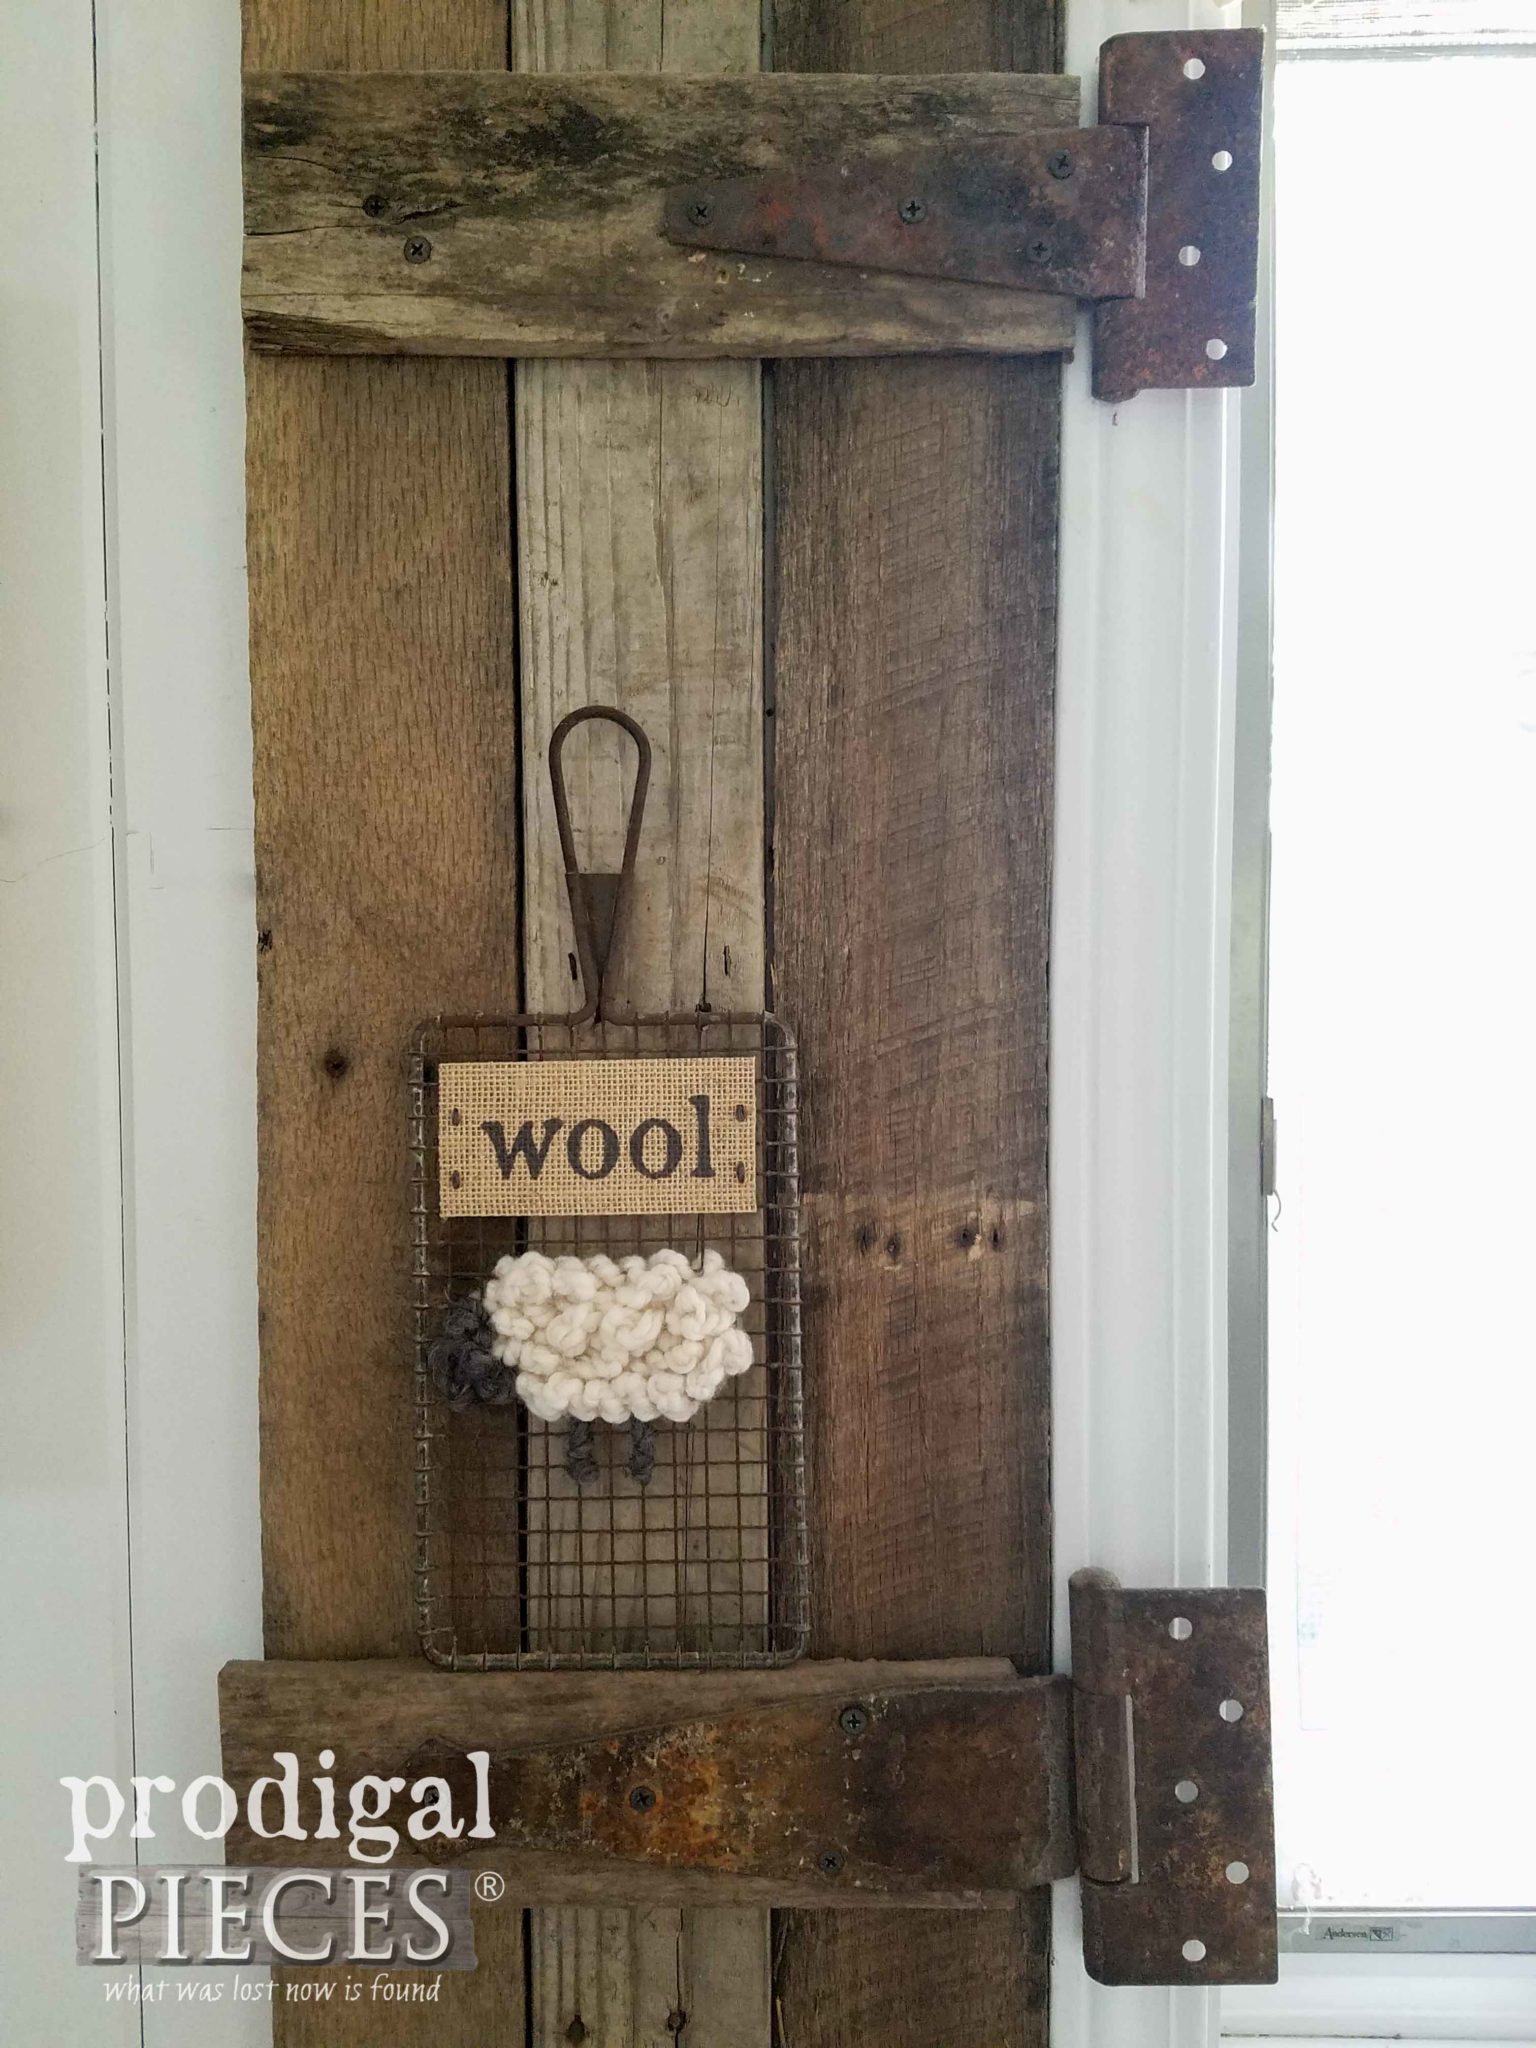 Repurposed Mesh Sifter Turned into Wooly Sheep Wall Art by Prodigal Pieces | prodigalpieces.com